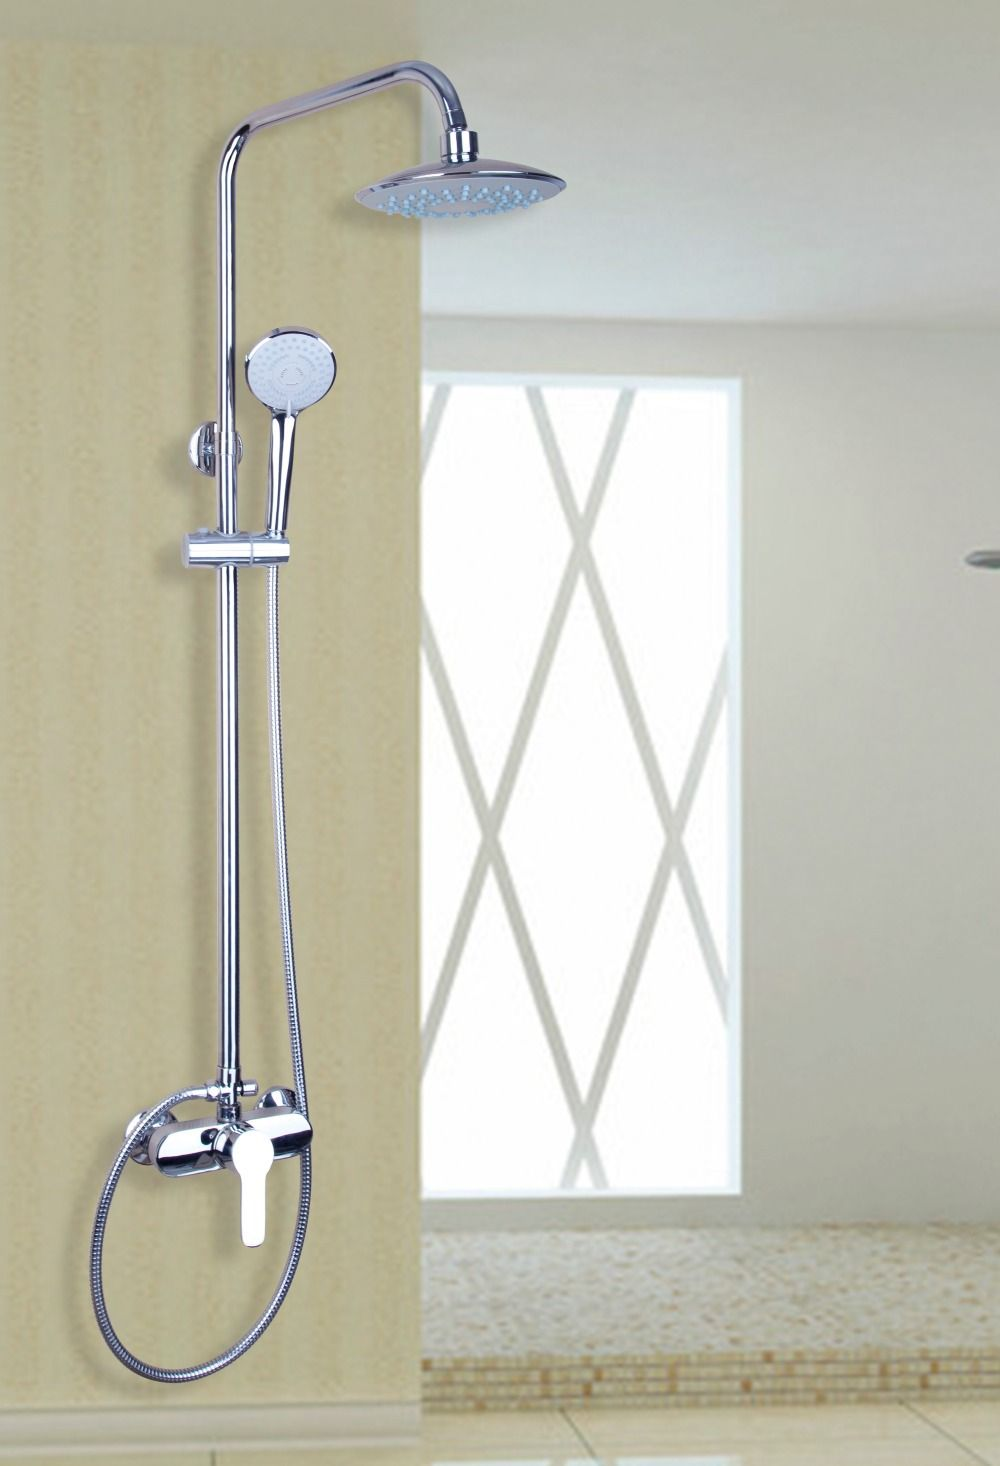 53606 Rainfall Hot Sale Chrome Widespread Waterfall Bathroom